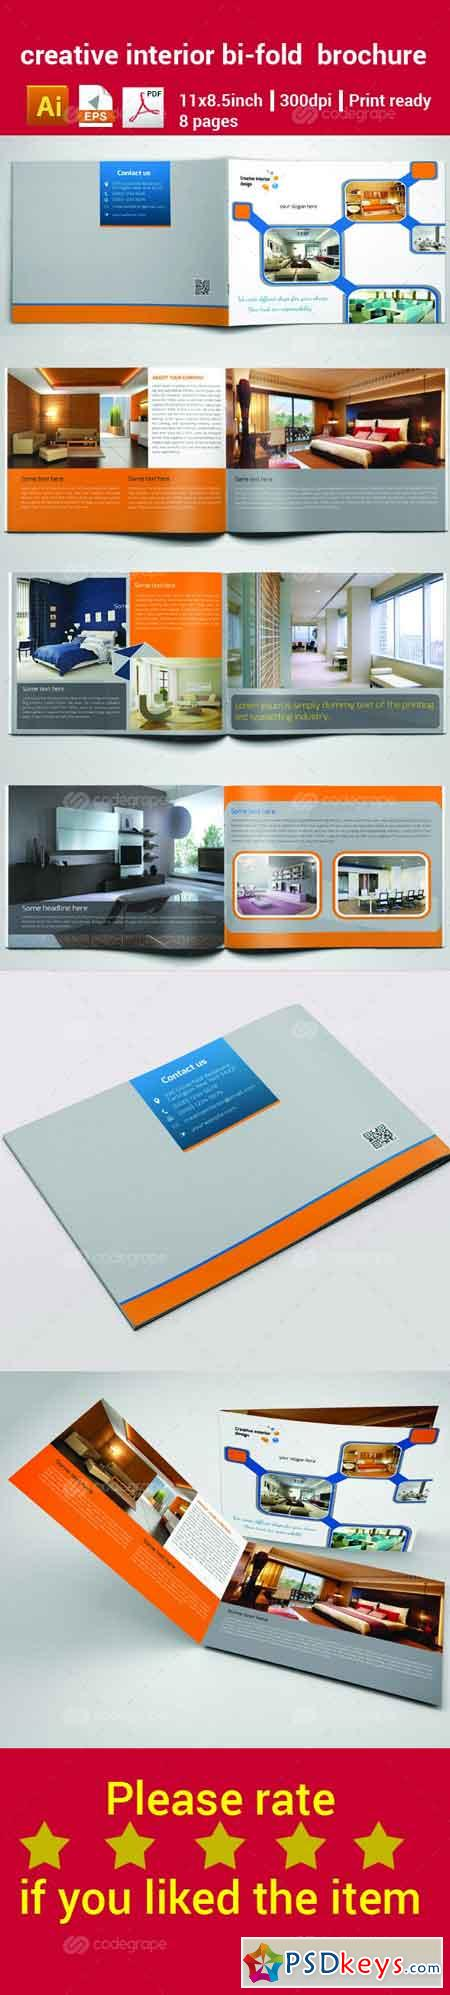 bi fold brochure template illustrator - creative interior bi fold brochure 6313 free download